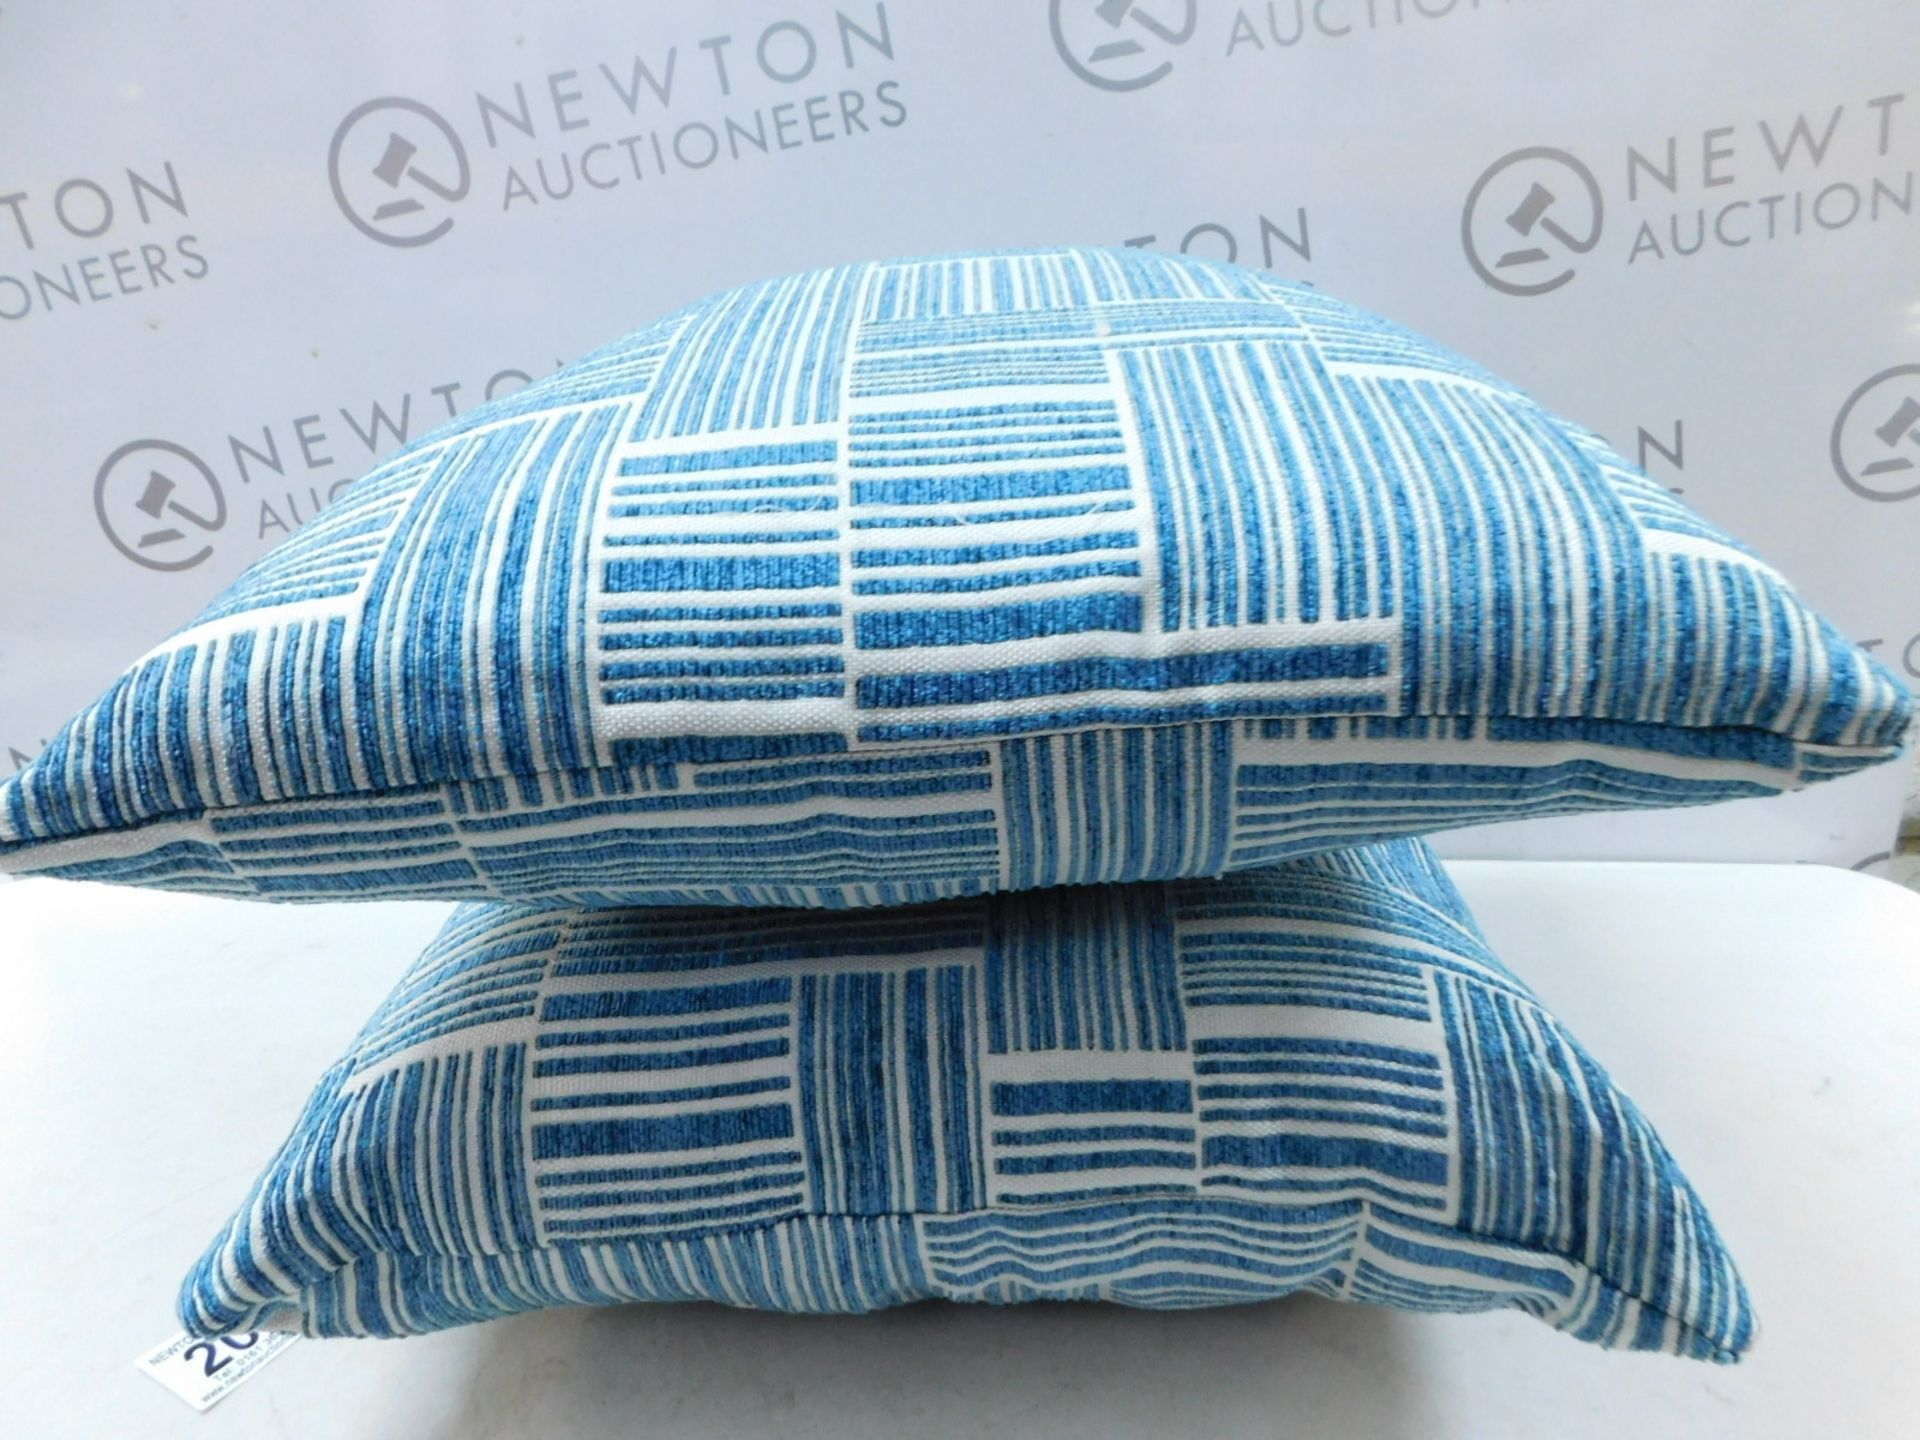 Lot 204 - 1 PAIR OF ARLEE HOME FASHION PATTERNED CUSHIONS RRP £39.99